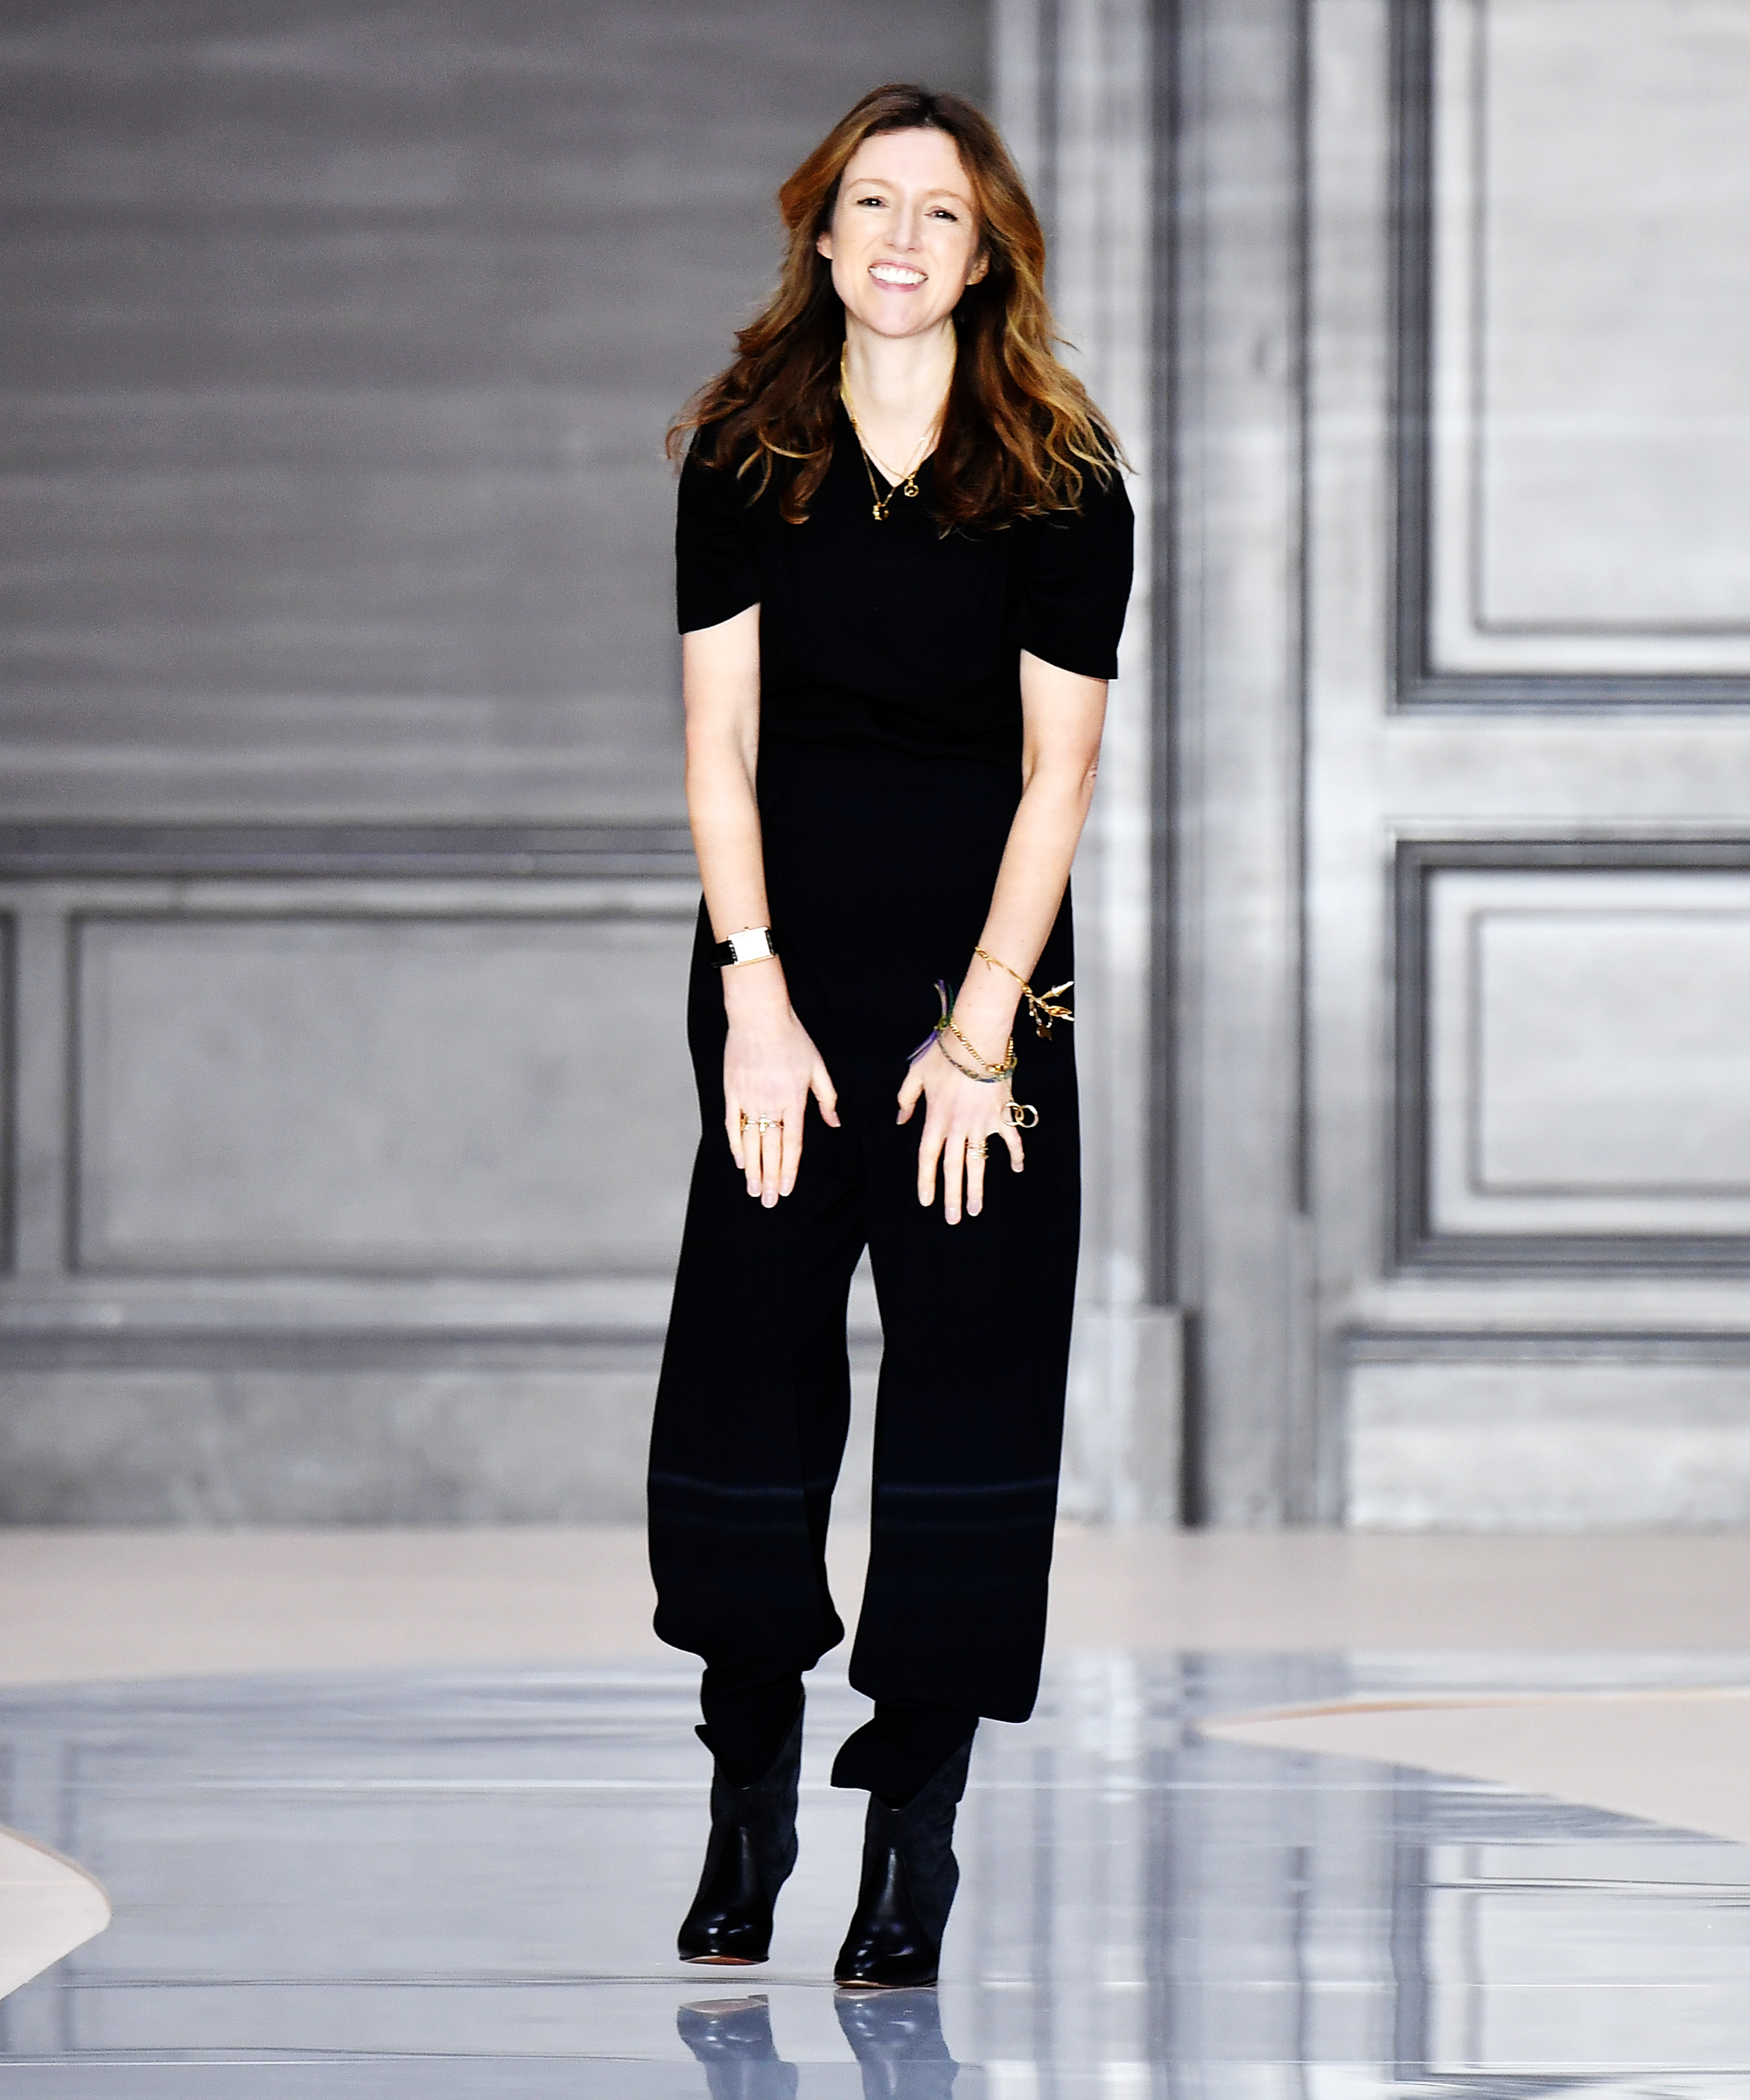 Clare Waight Keller is Givenchy's new artistic director